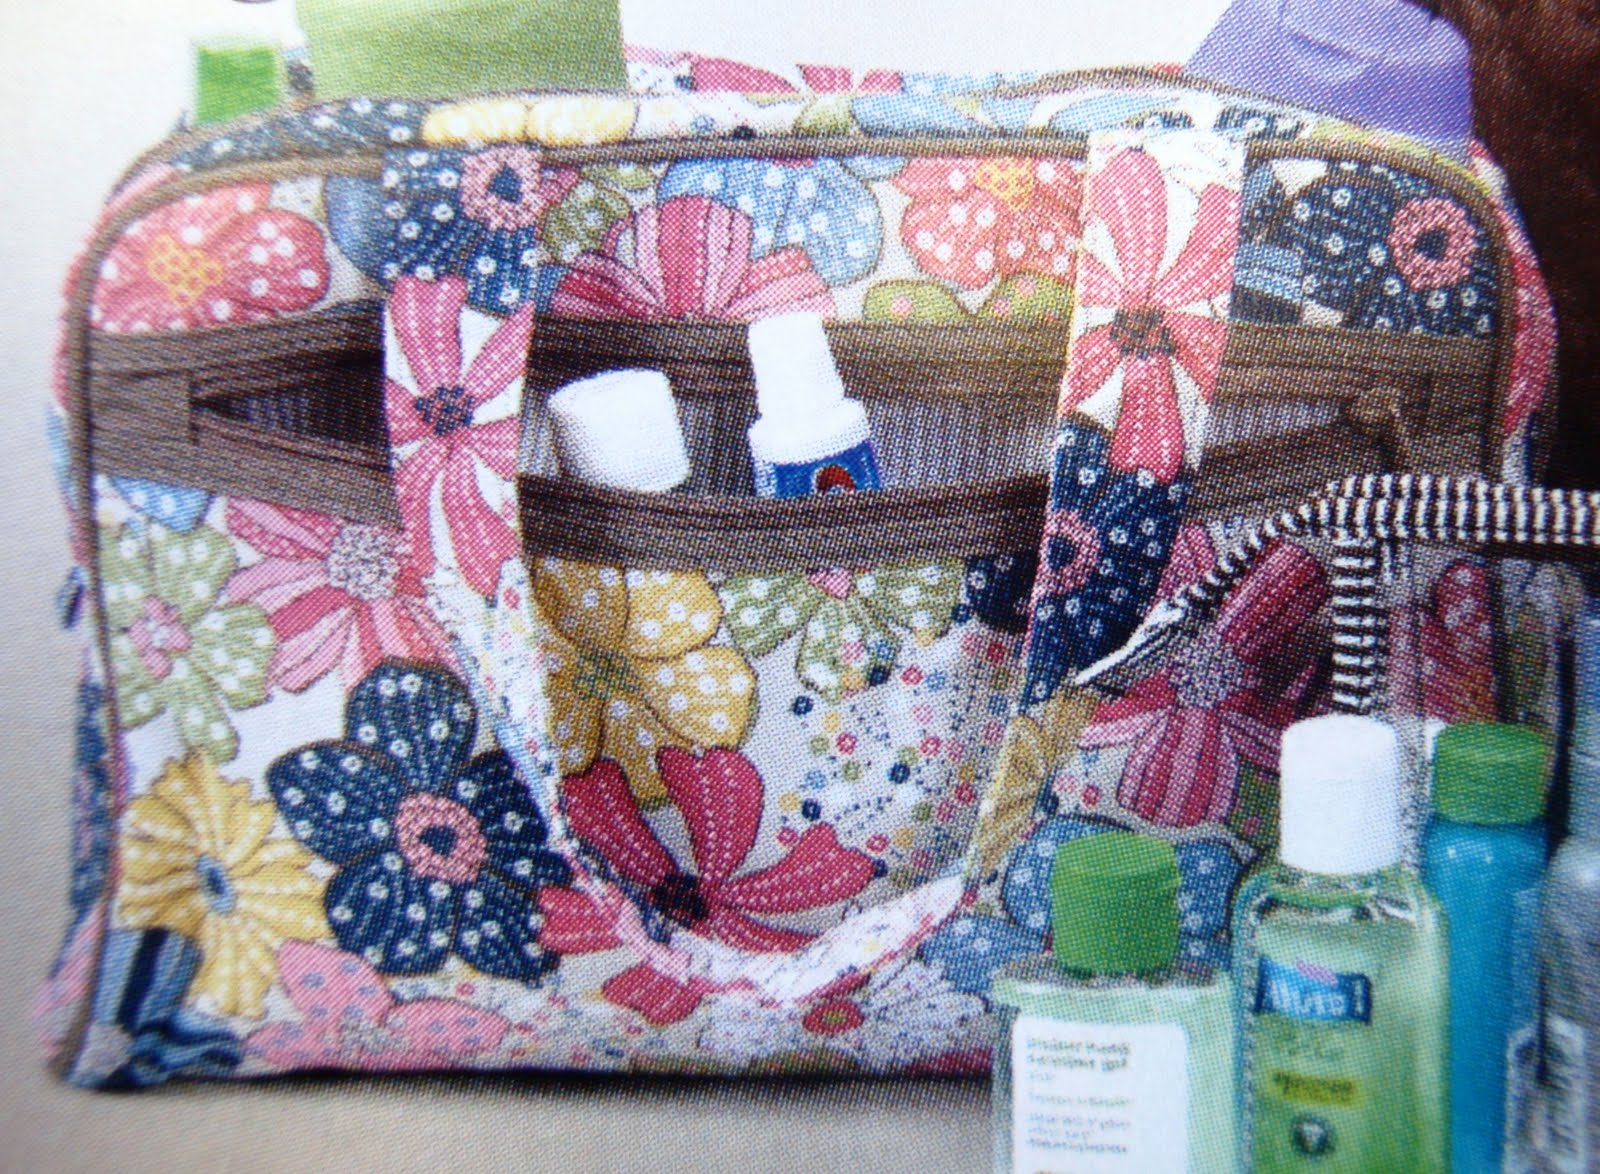 Check Out This Cute Cosmetic Bag From Thirty One The Handle It Is Perfect For Those Summer Getaways Free Spirit Fl